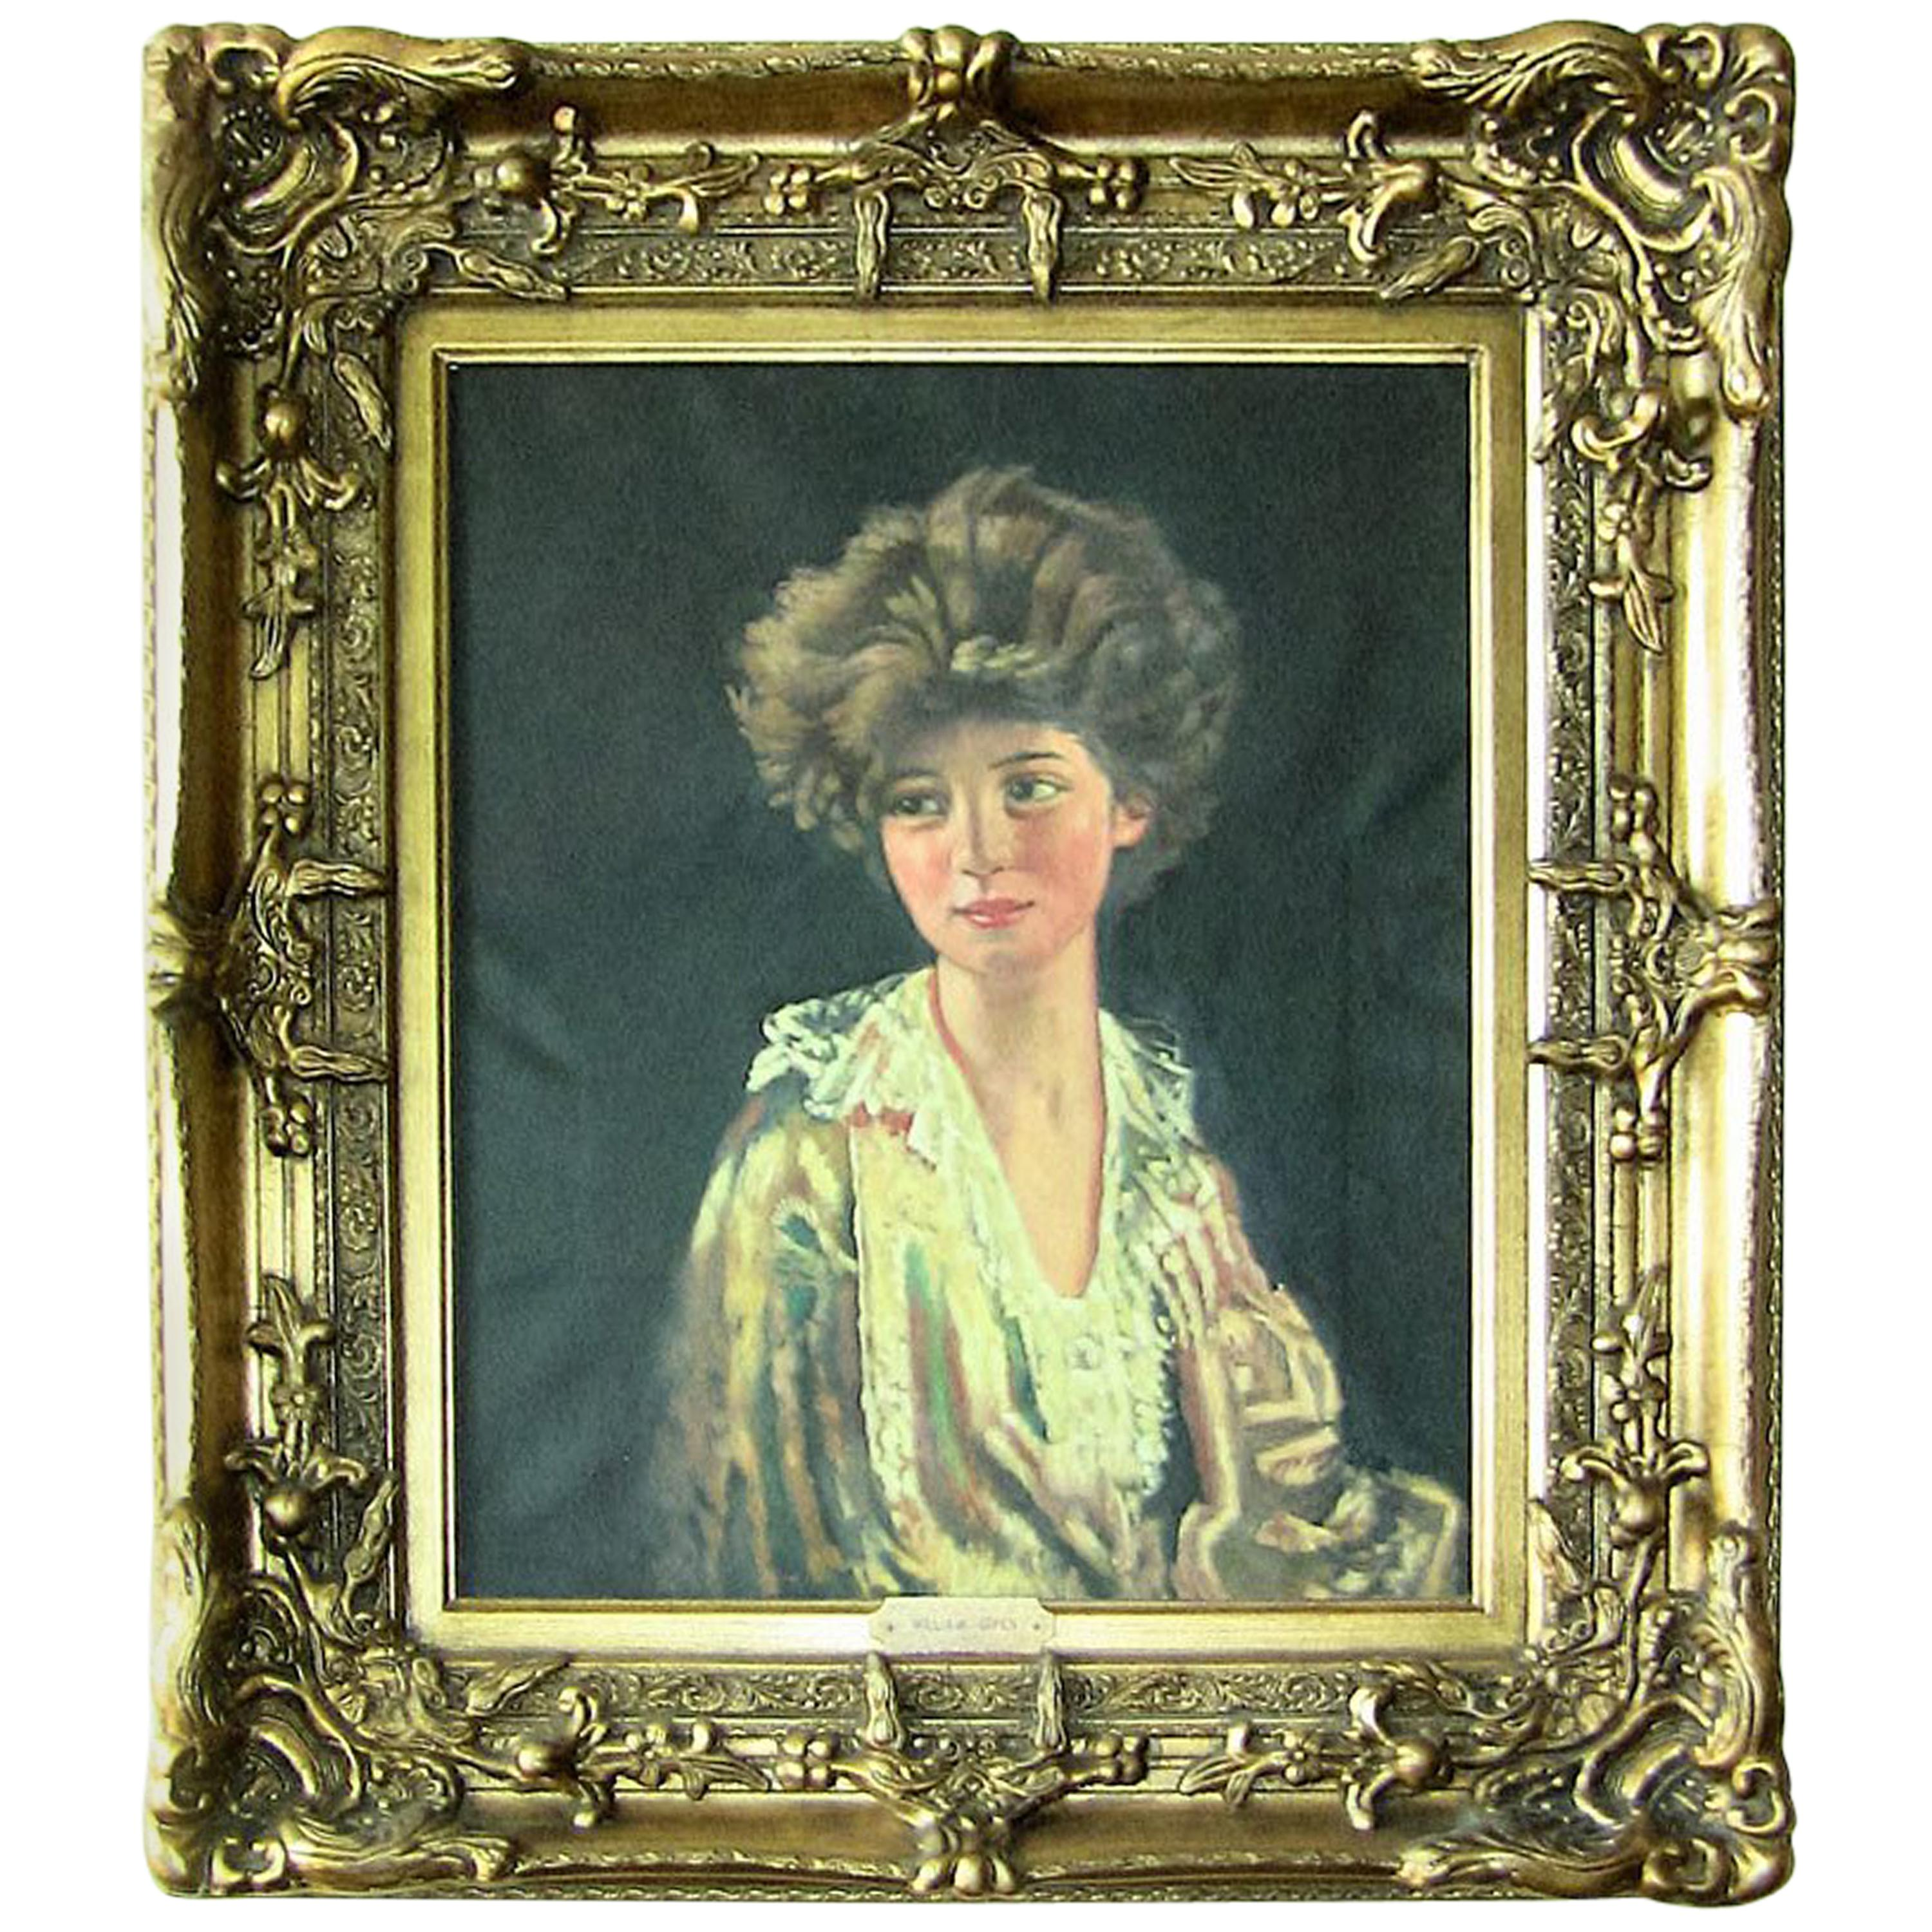 Oil on Canvas of Lady Evelyn Herbert after Sir William Orpen